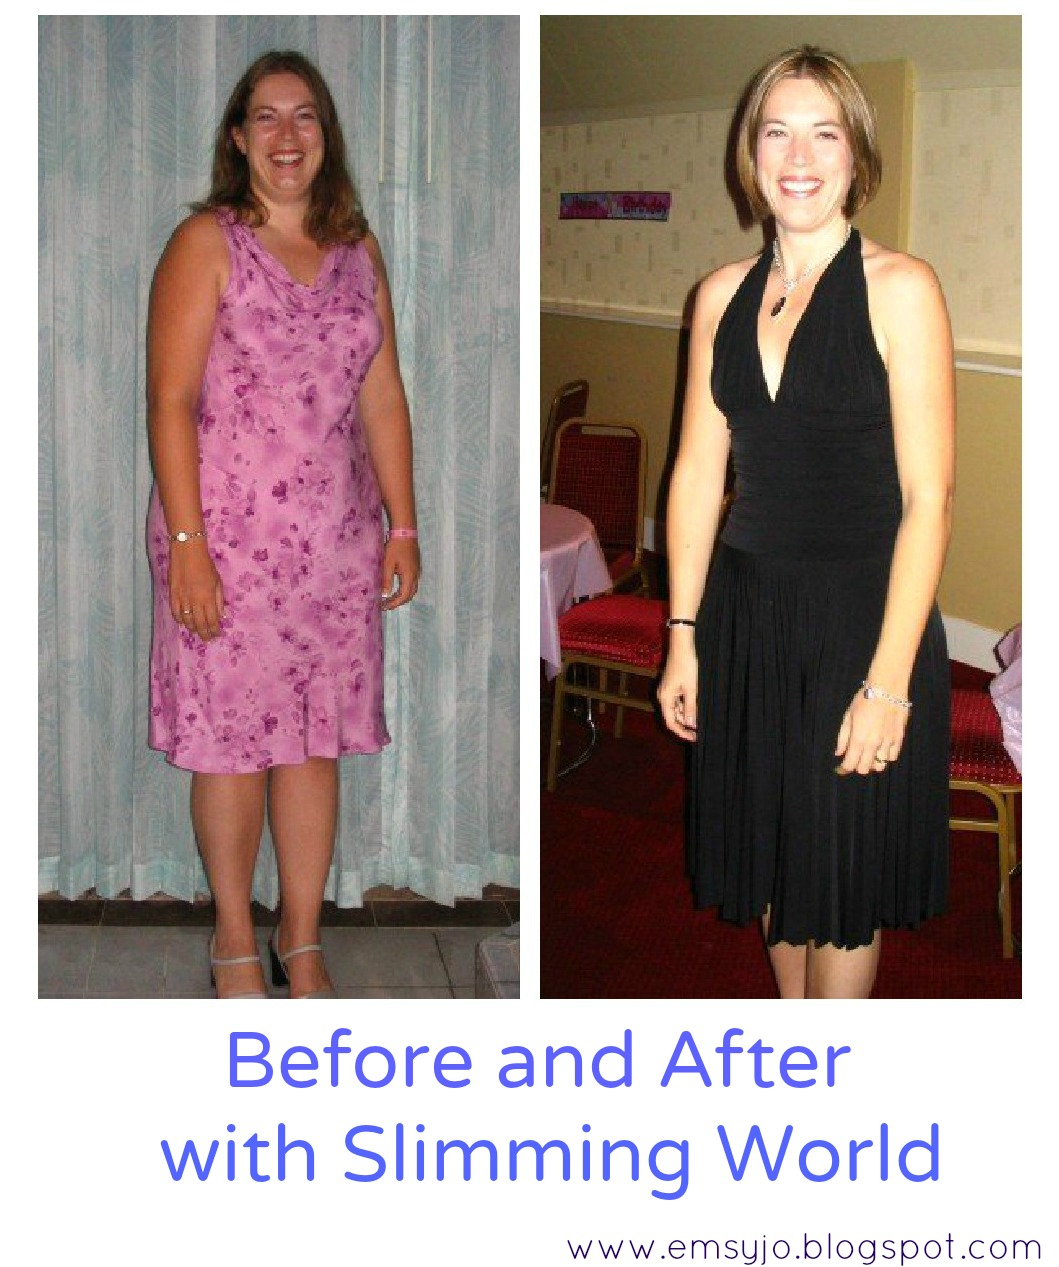 A matter of choice: Slimming World & Fitness